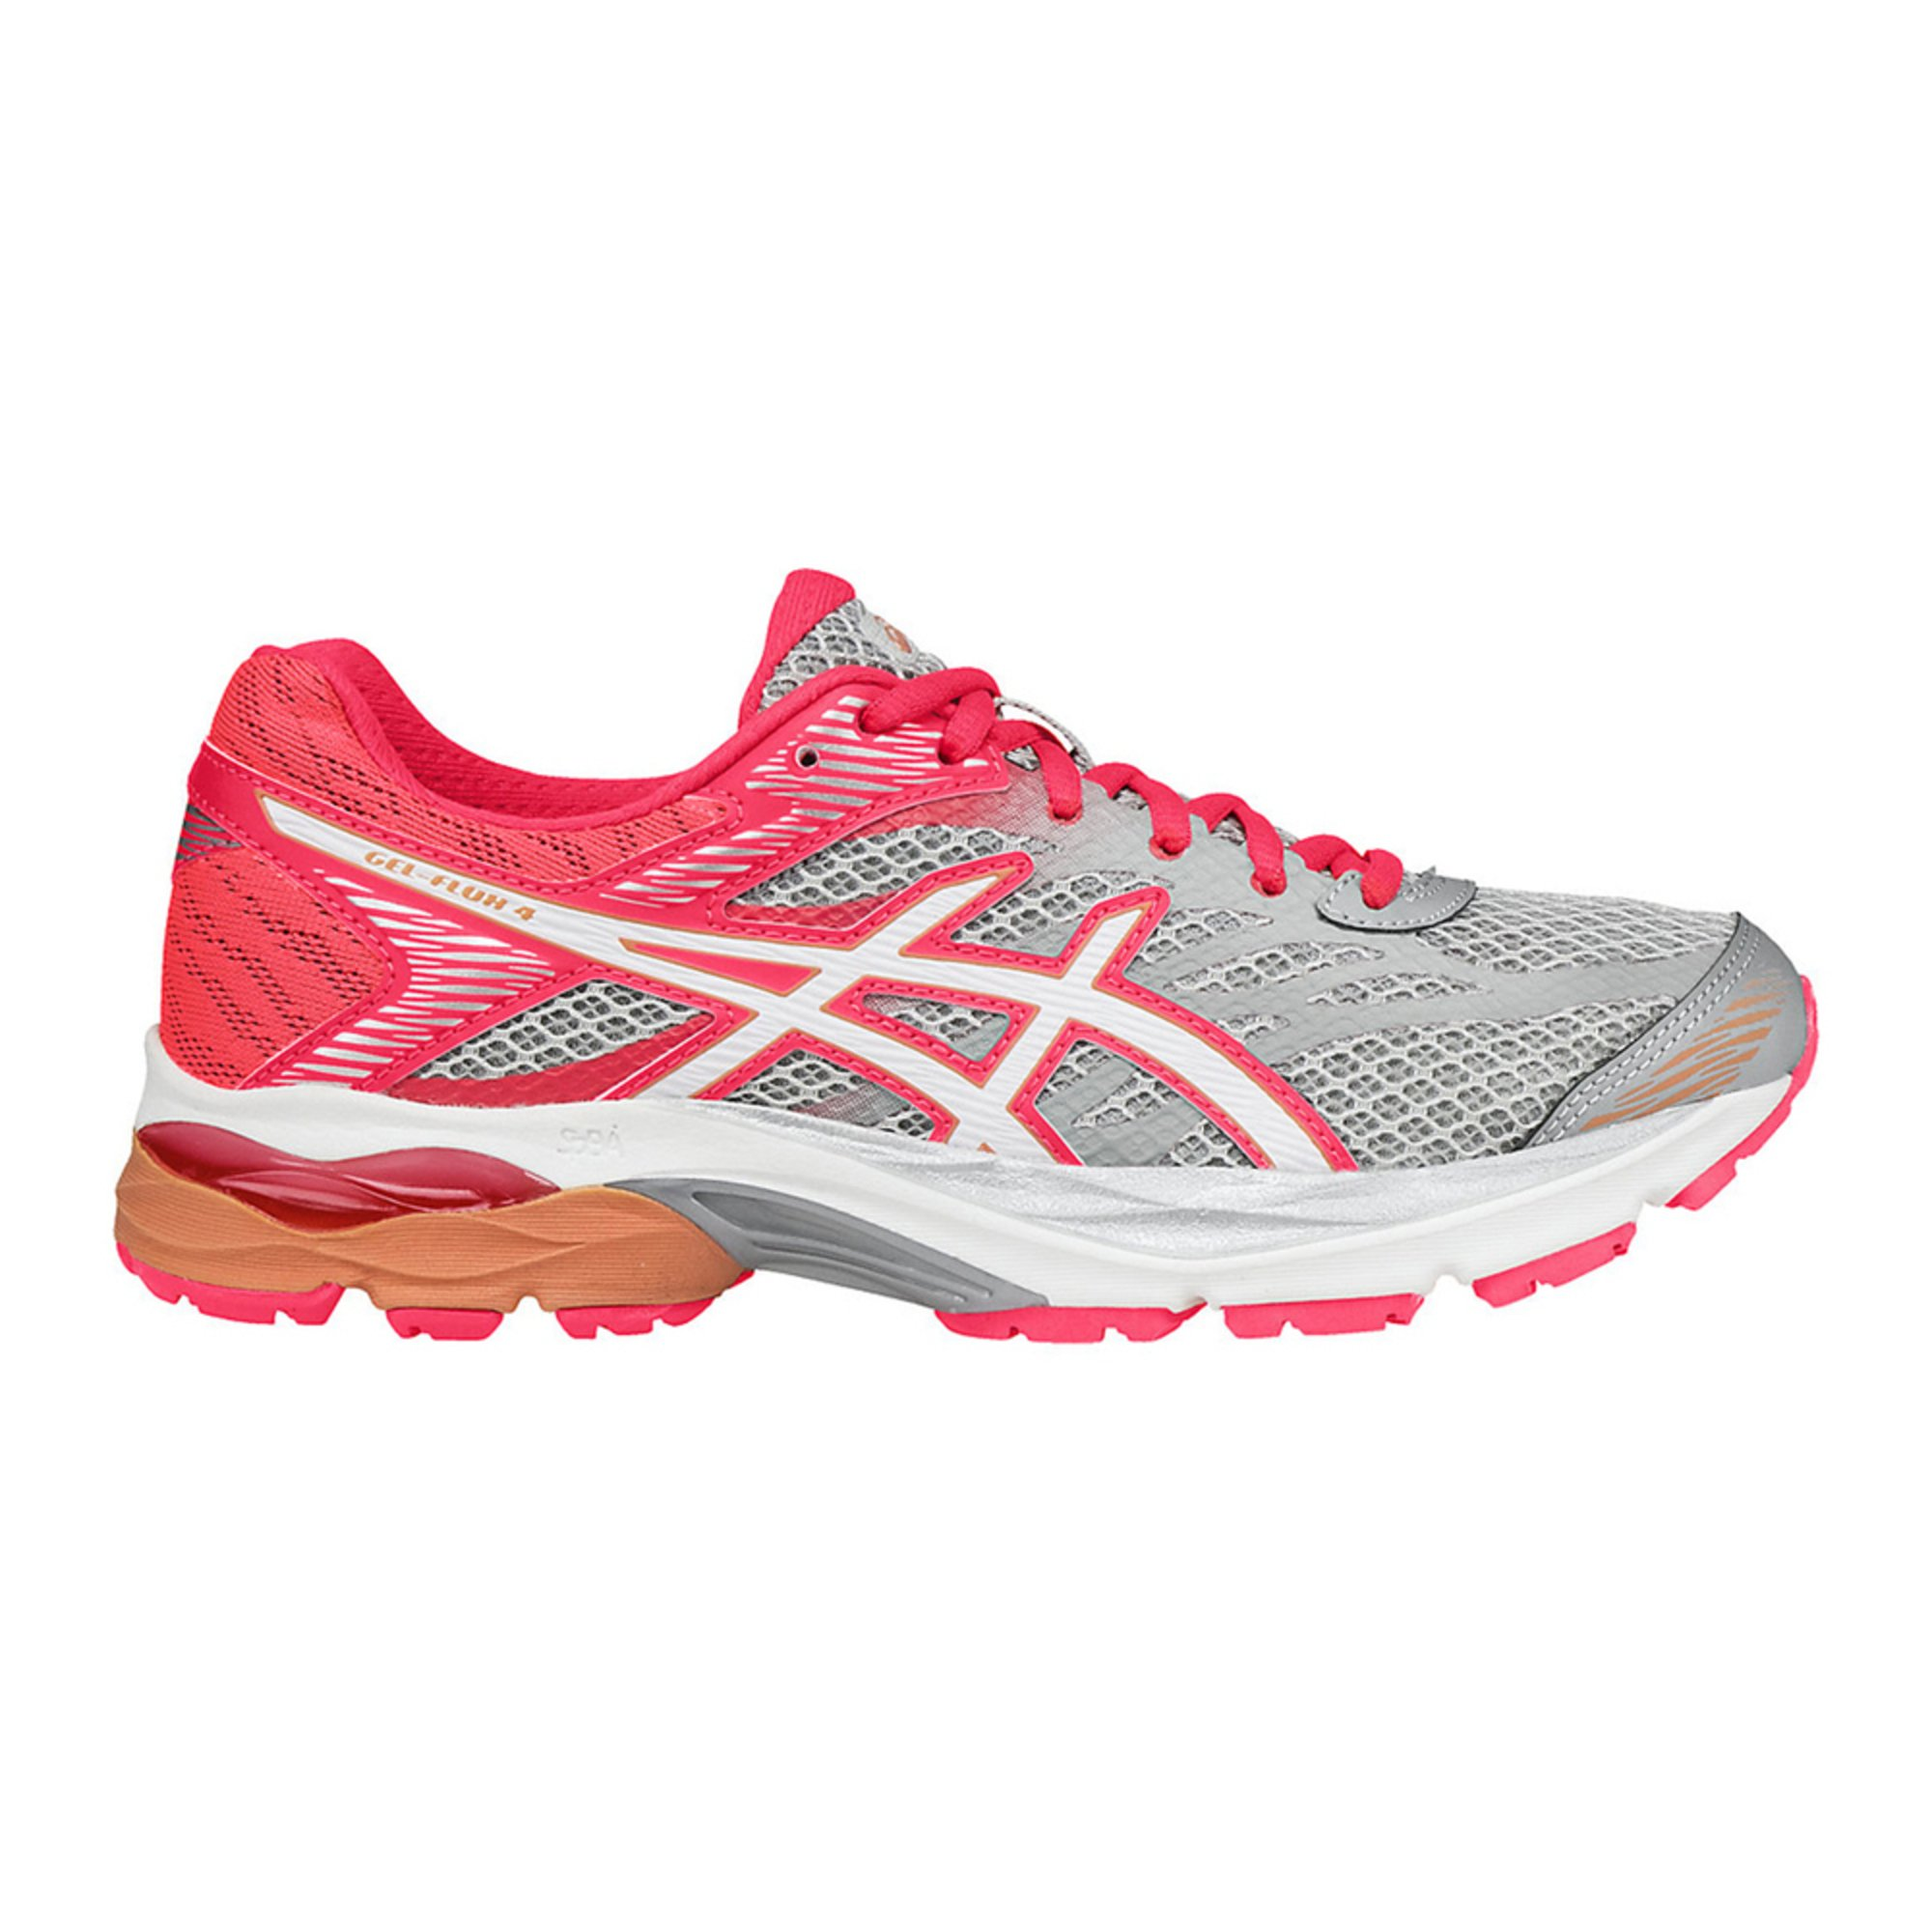 asics gel flux 4 women 39 s running shoe white diva pink. Black Bedroom Furniture Sets. Home Design Ideas